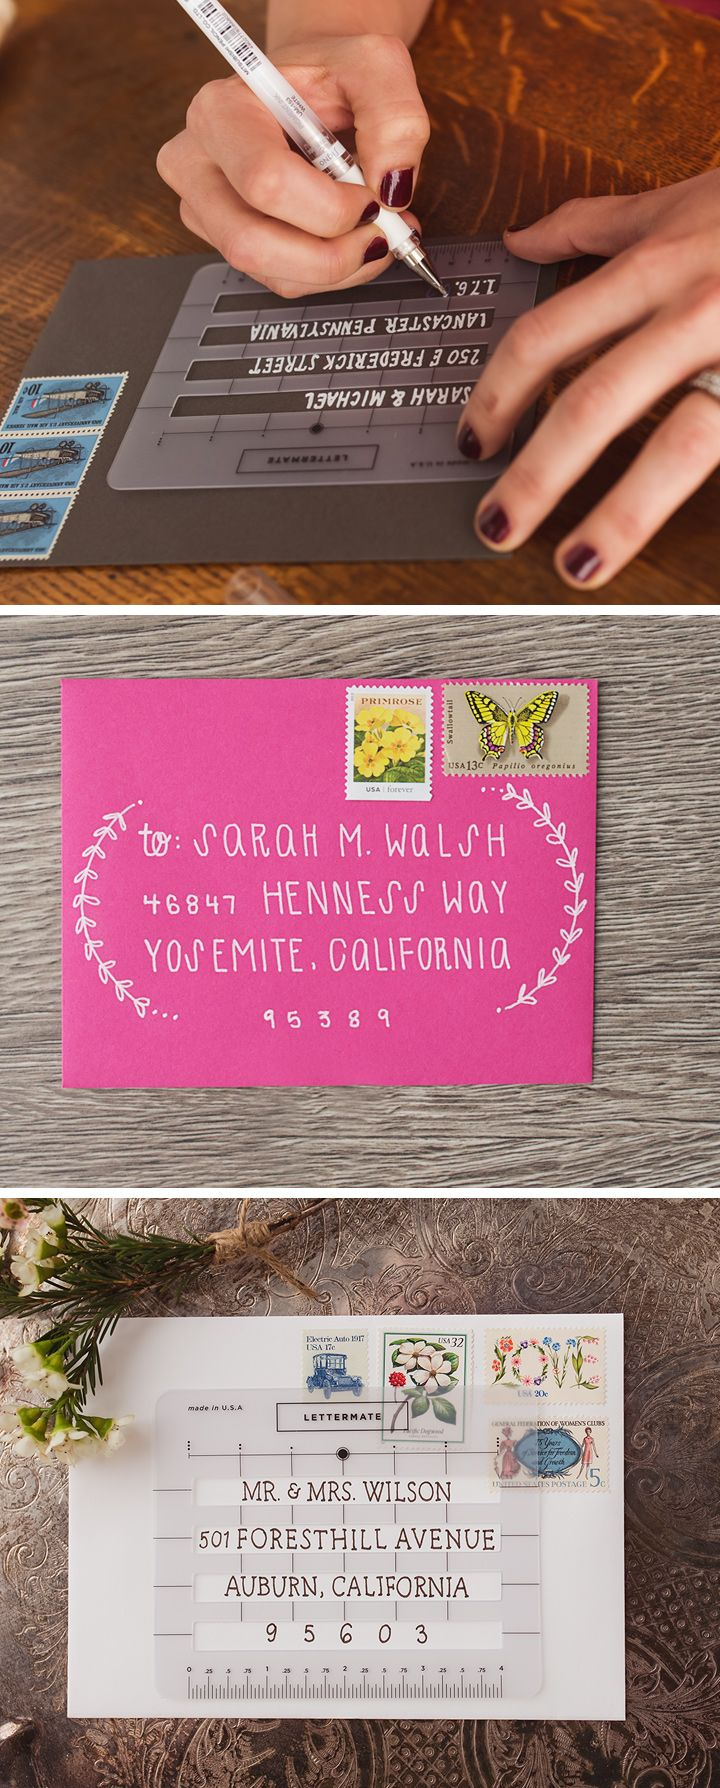 The Lettermate is an address stencil that keeps your writing straight and aligned, as well as letting you decorate your envelopes with hand-drawn designs.